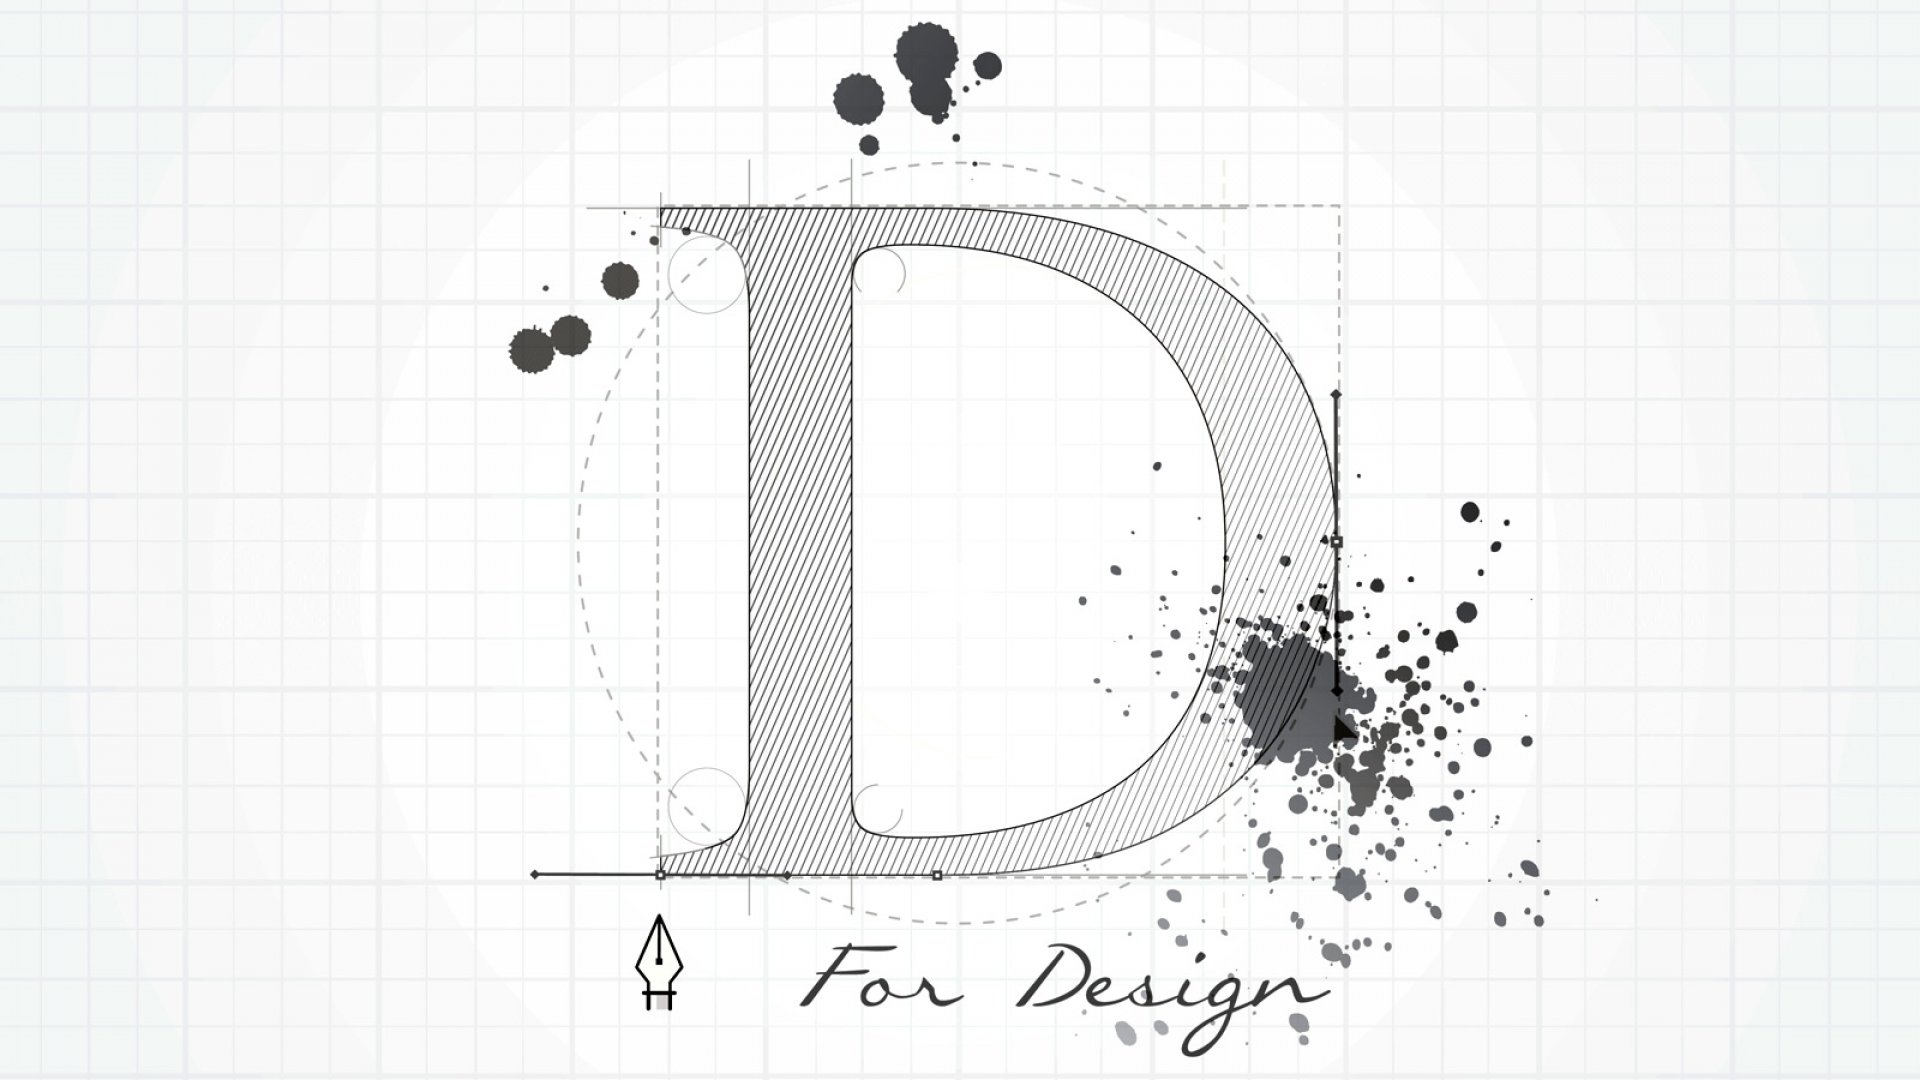 Web Design Trends to Watch in 2014